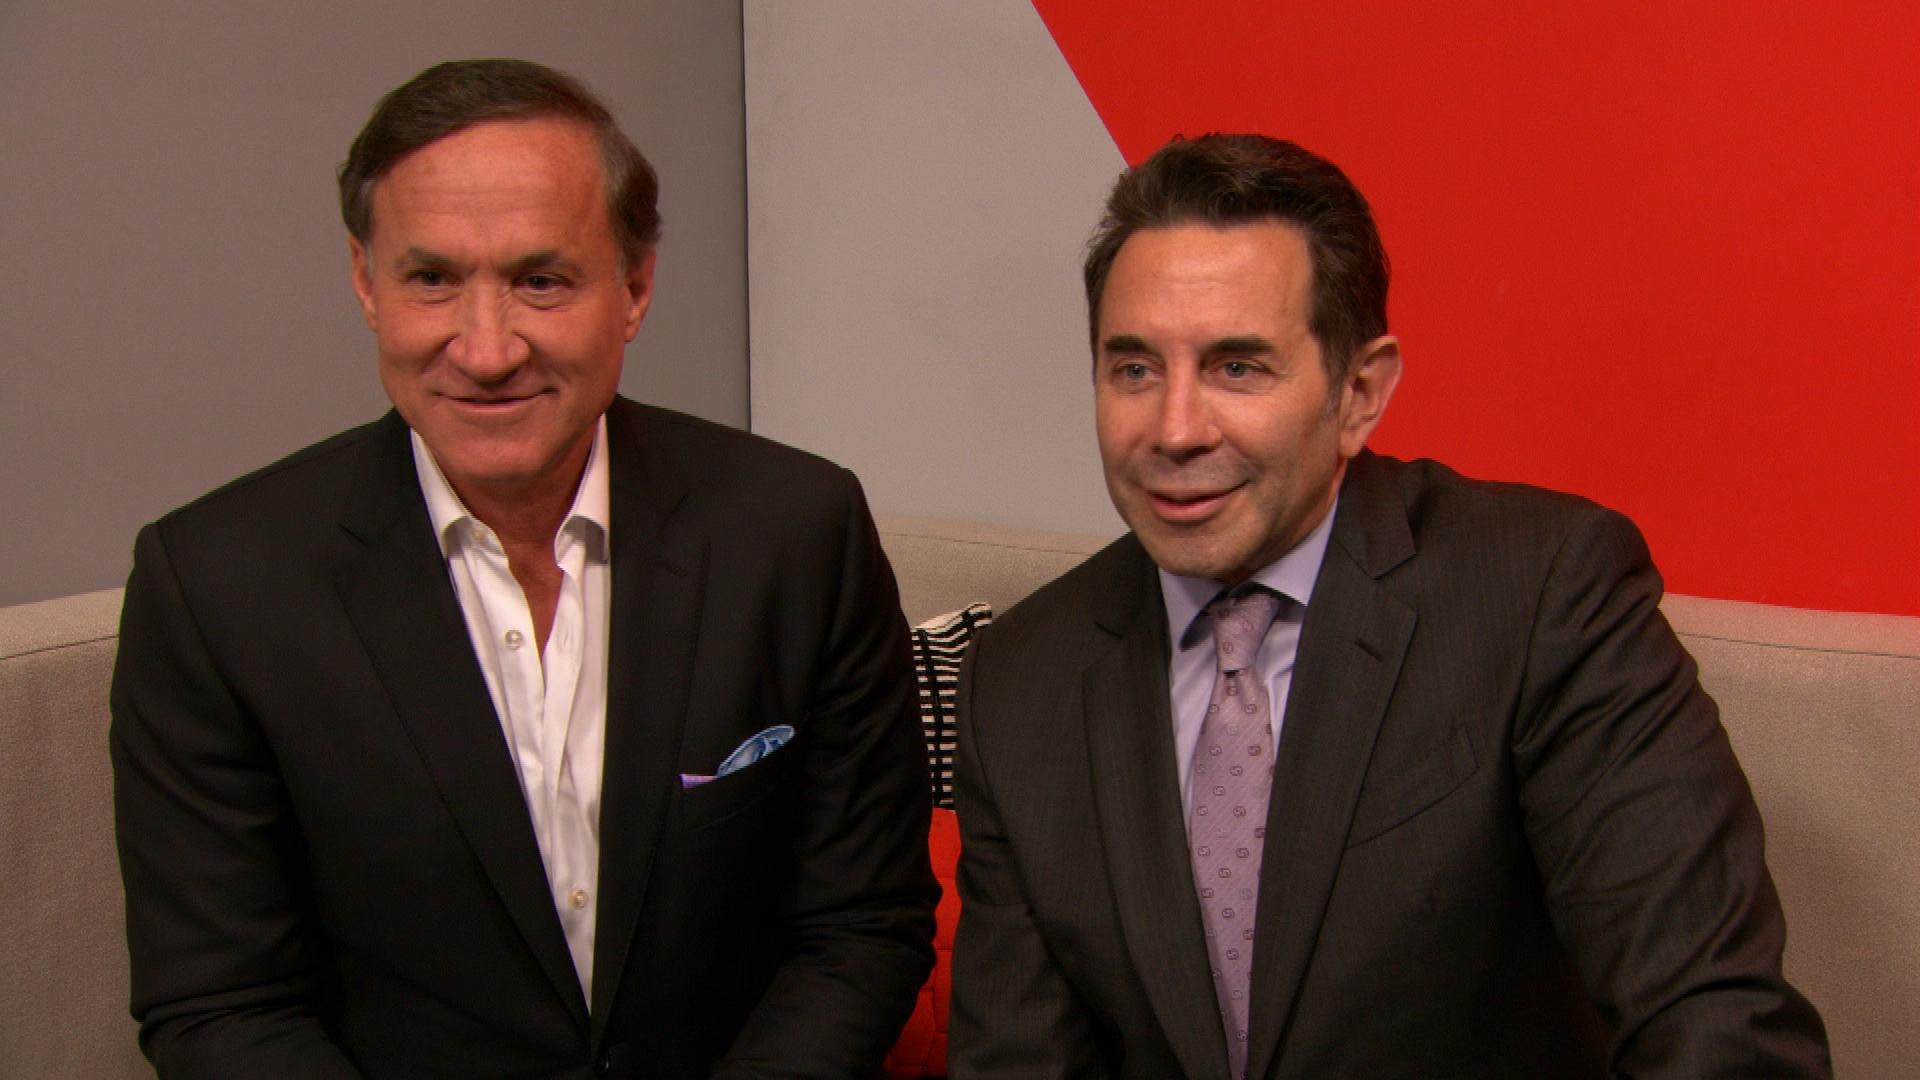 Dr. Paul Nassif Loses Weight and Gets a New Girlfriend